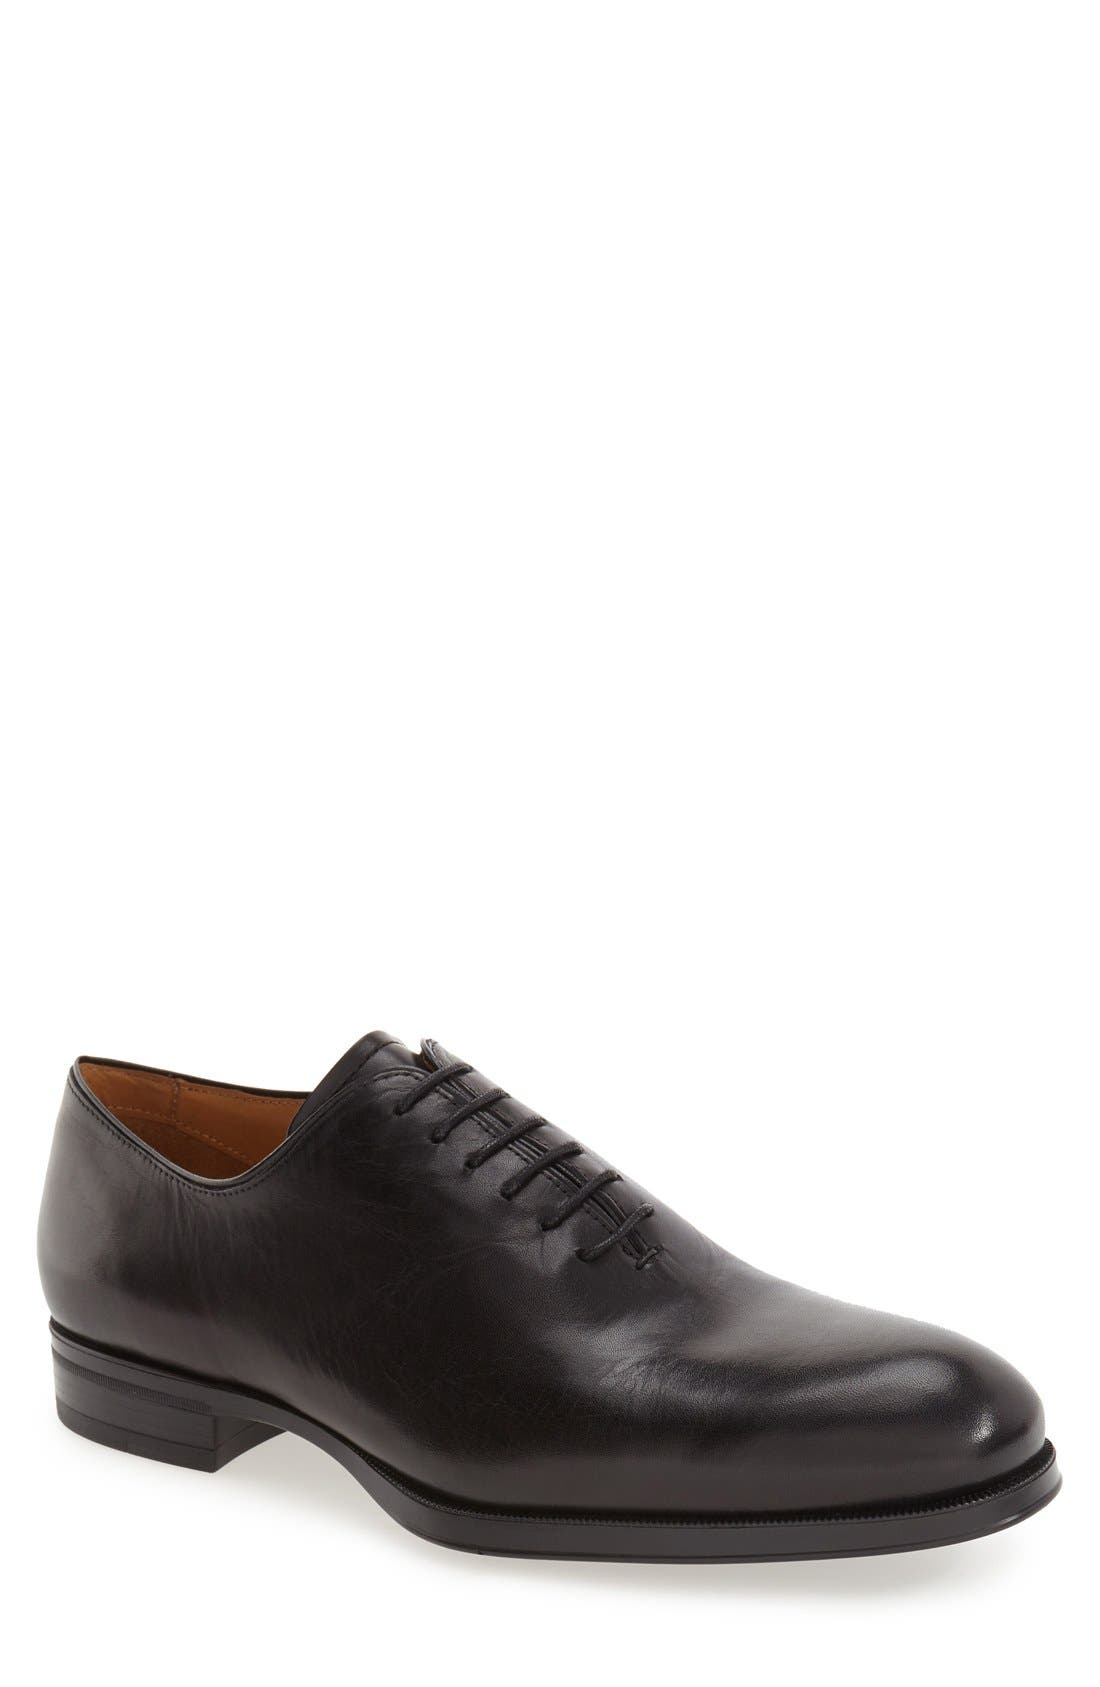 Alternate Image 1 Selected - Vince Camuto 'Tarby' Wholecut Oxford (Men)